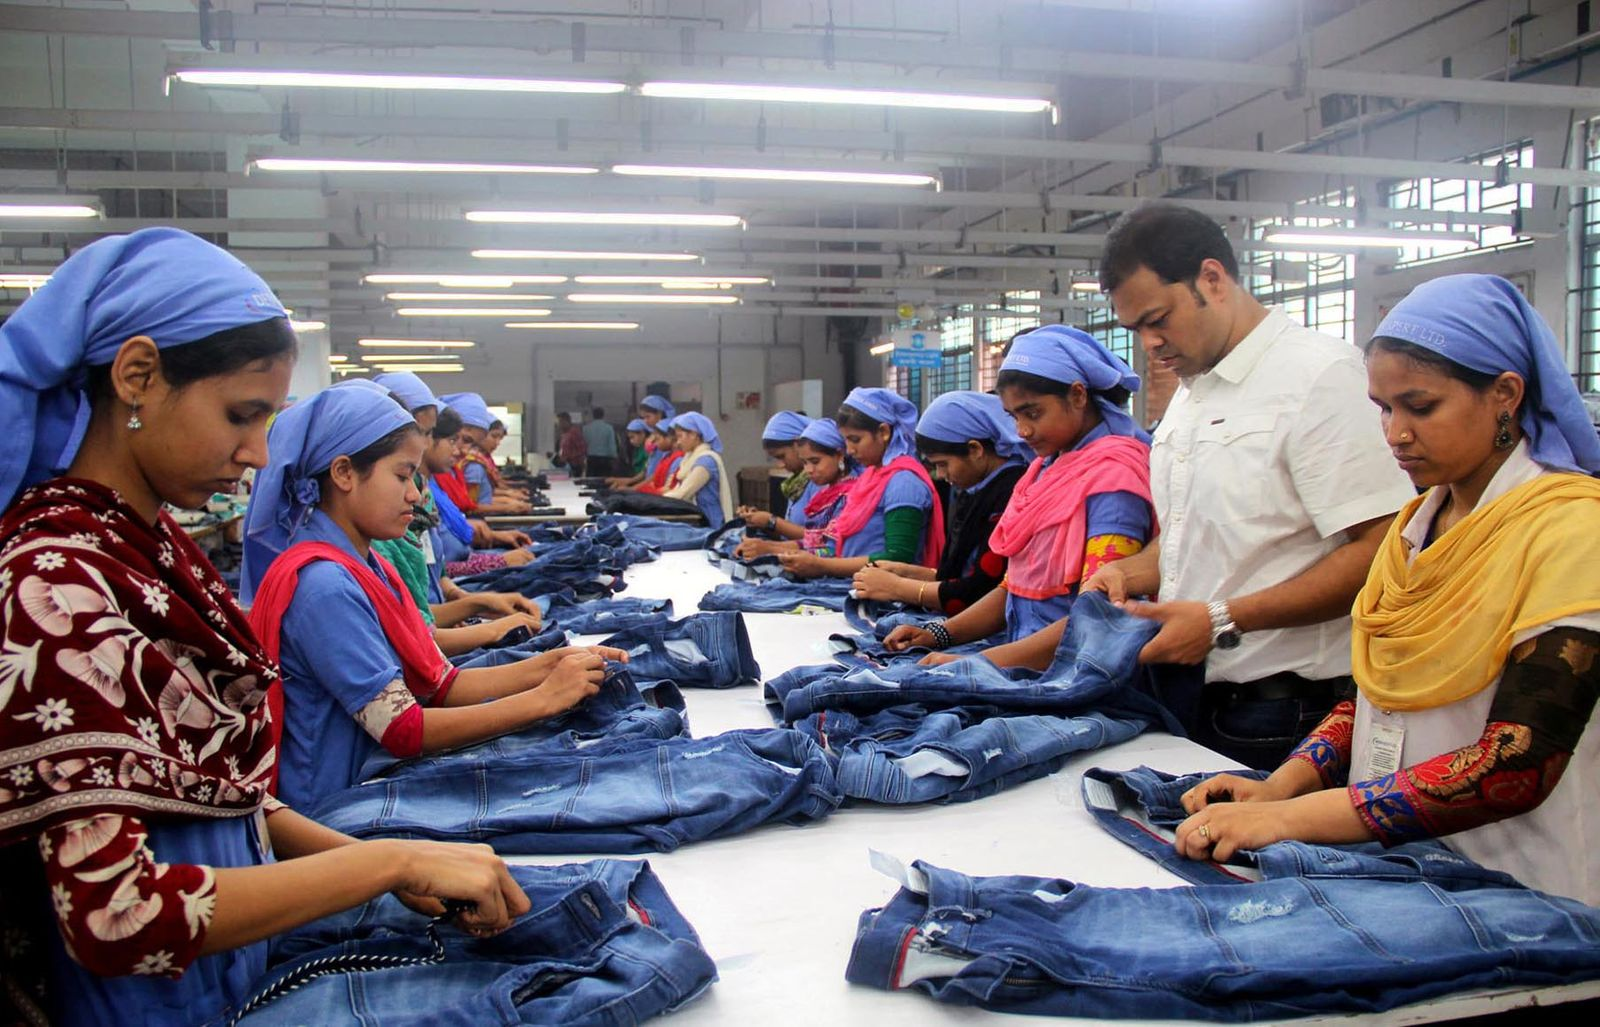 The Denim expert made in Bangladesh